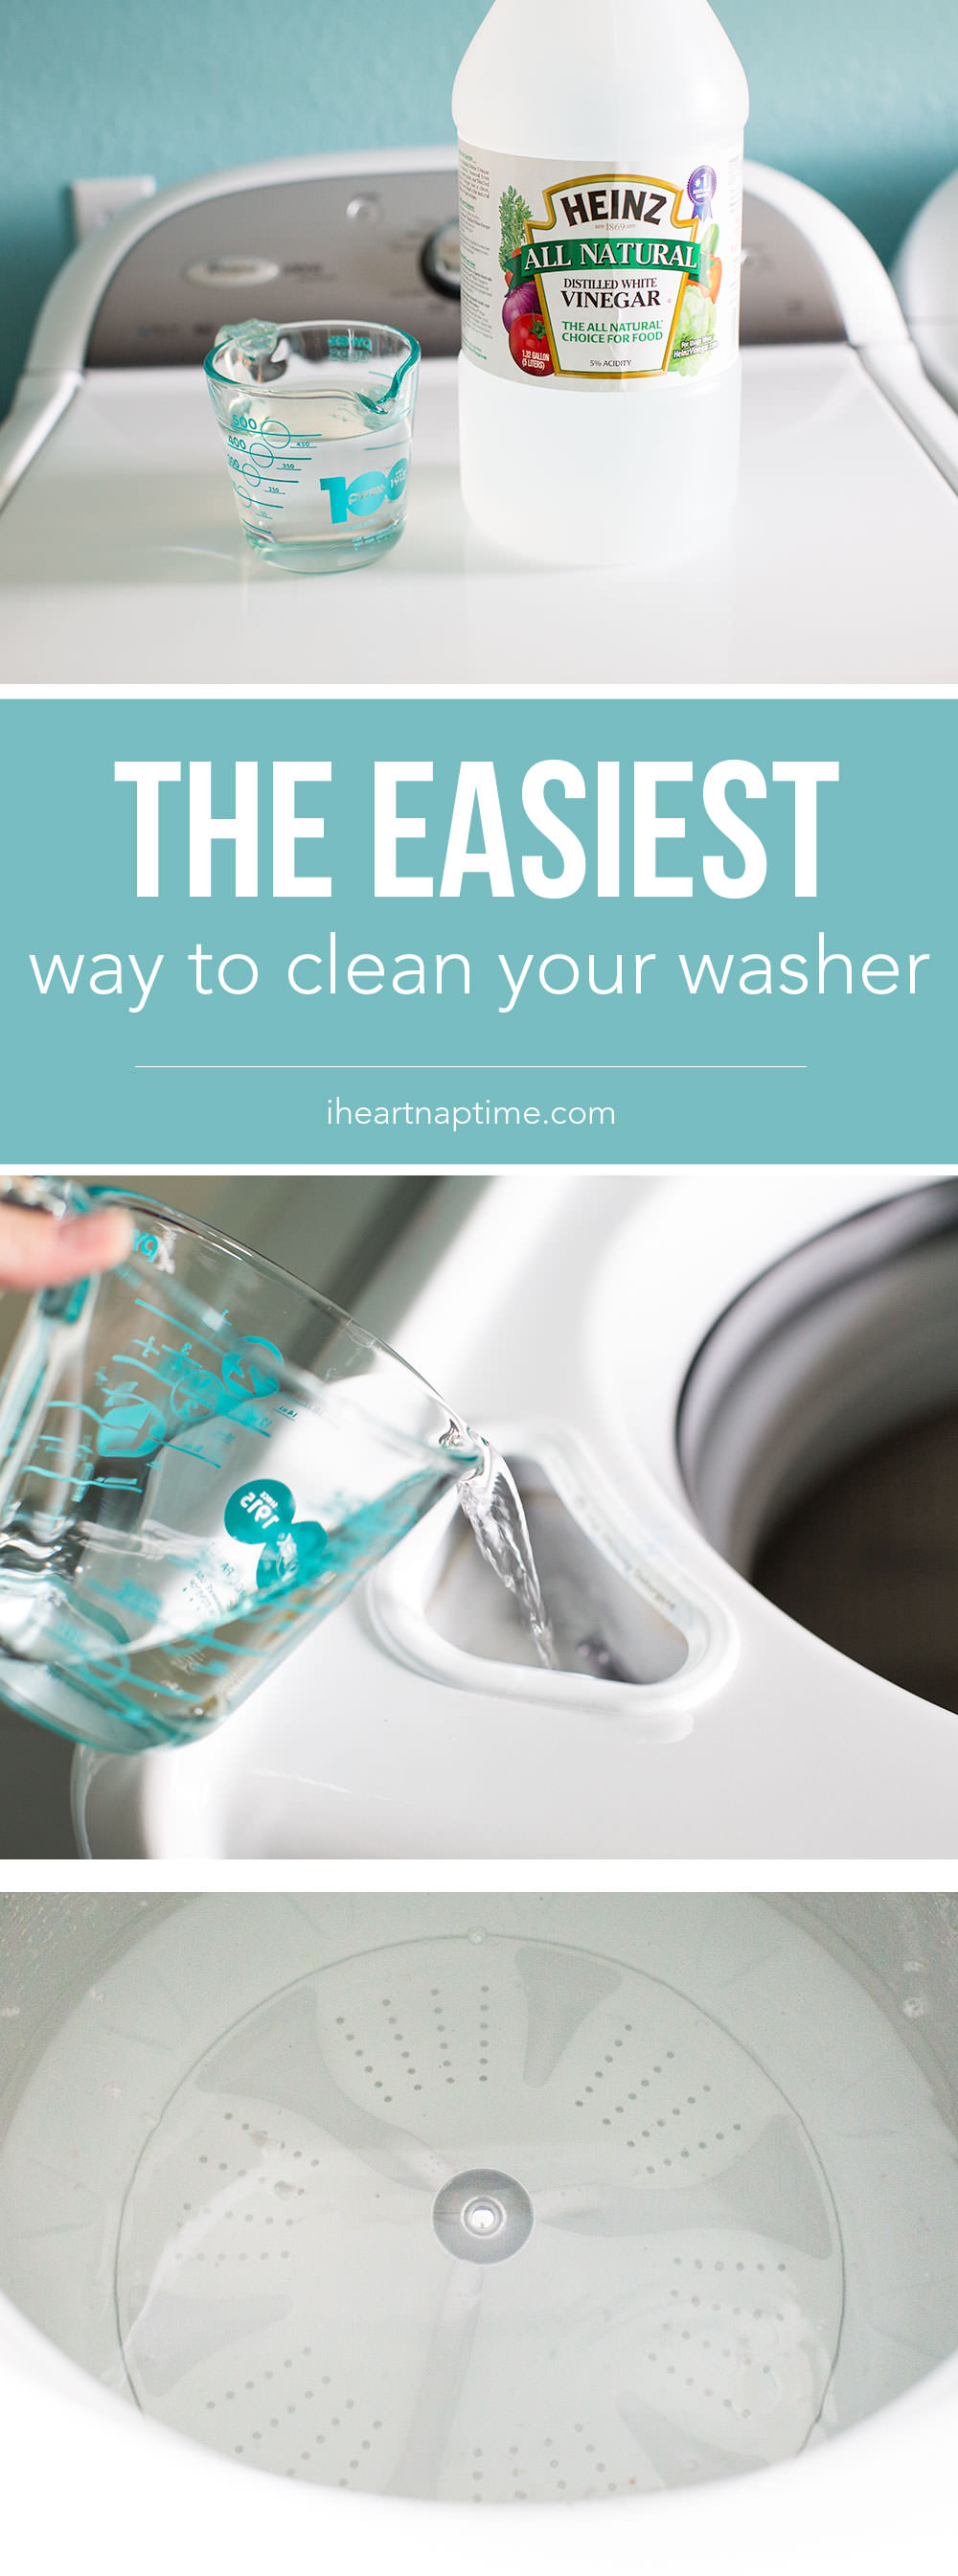 Your washing machine needs a clean up too. It's easy! All it takes is ONE ingredient and a few minutes to leave your washer smelling squeaky clean. Check out!